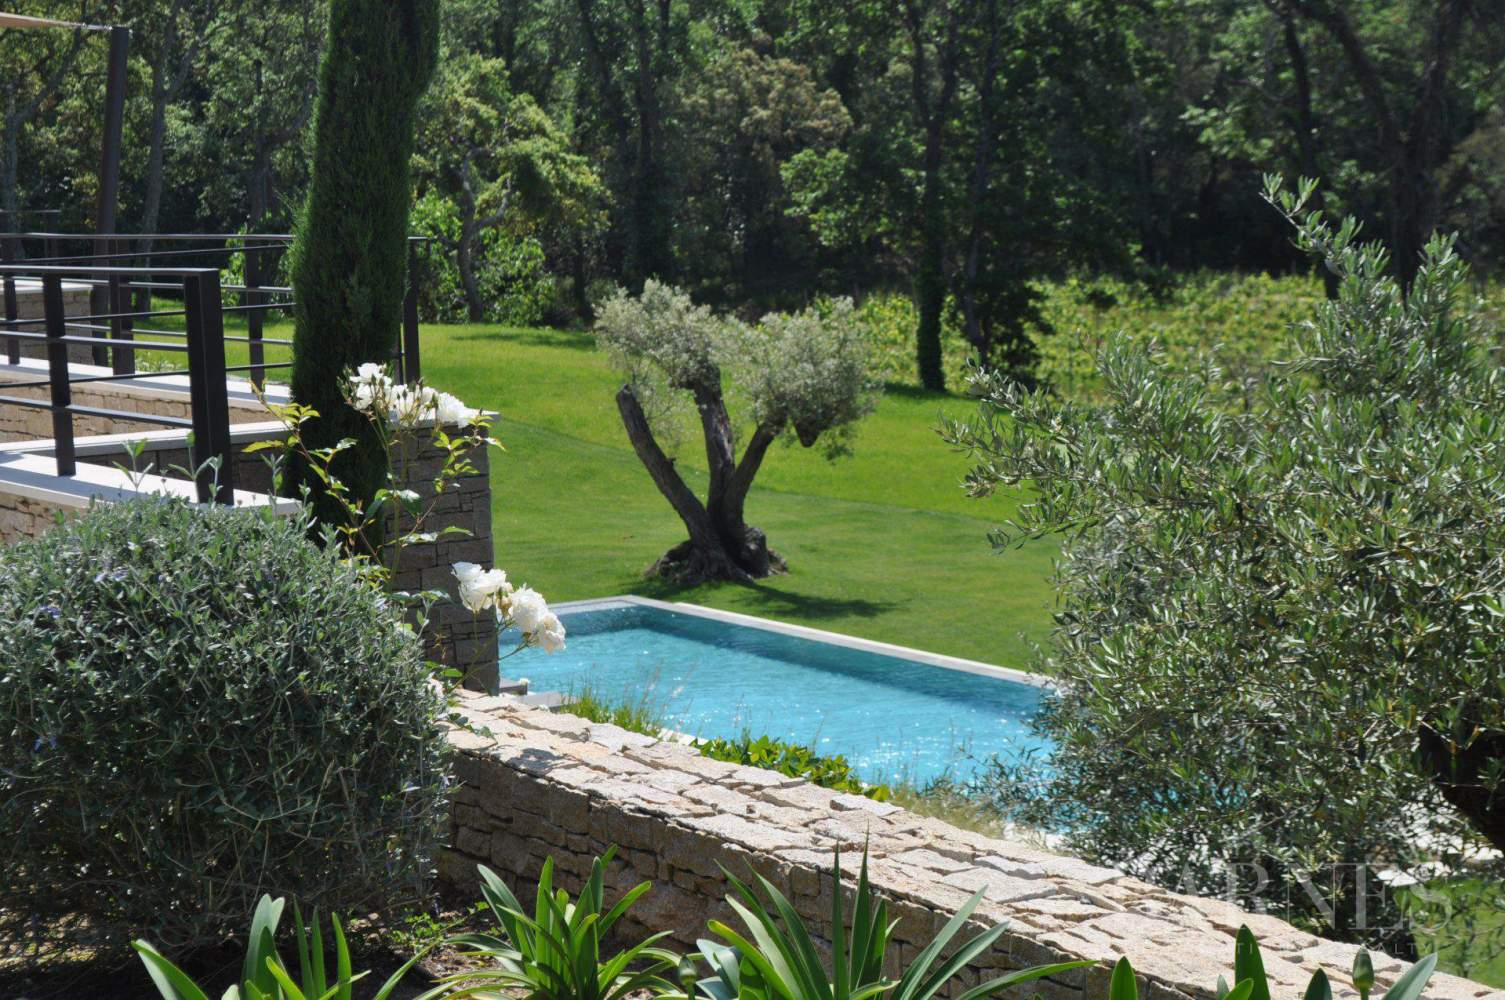 GASSIN - Villa 7 bedrooms - Infinity pool - Golf - Absolute calm and privacy picture 2